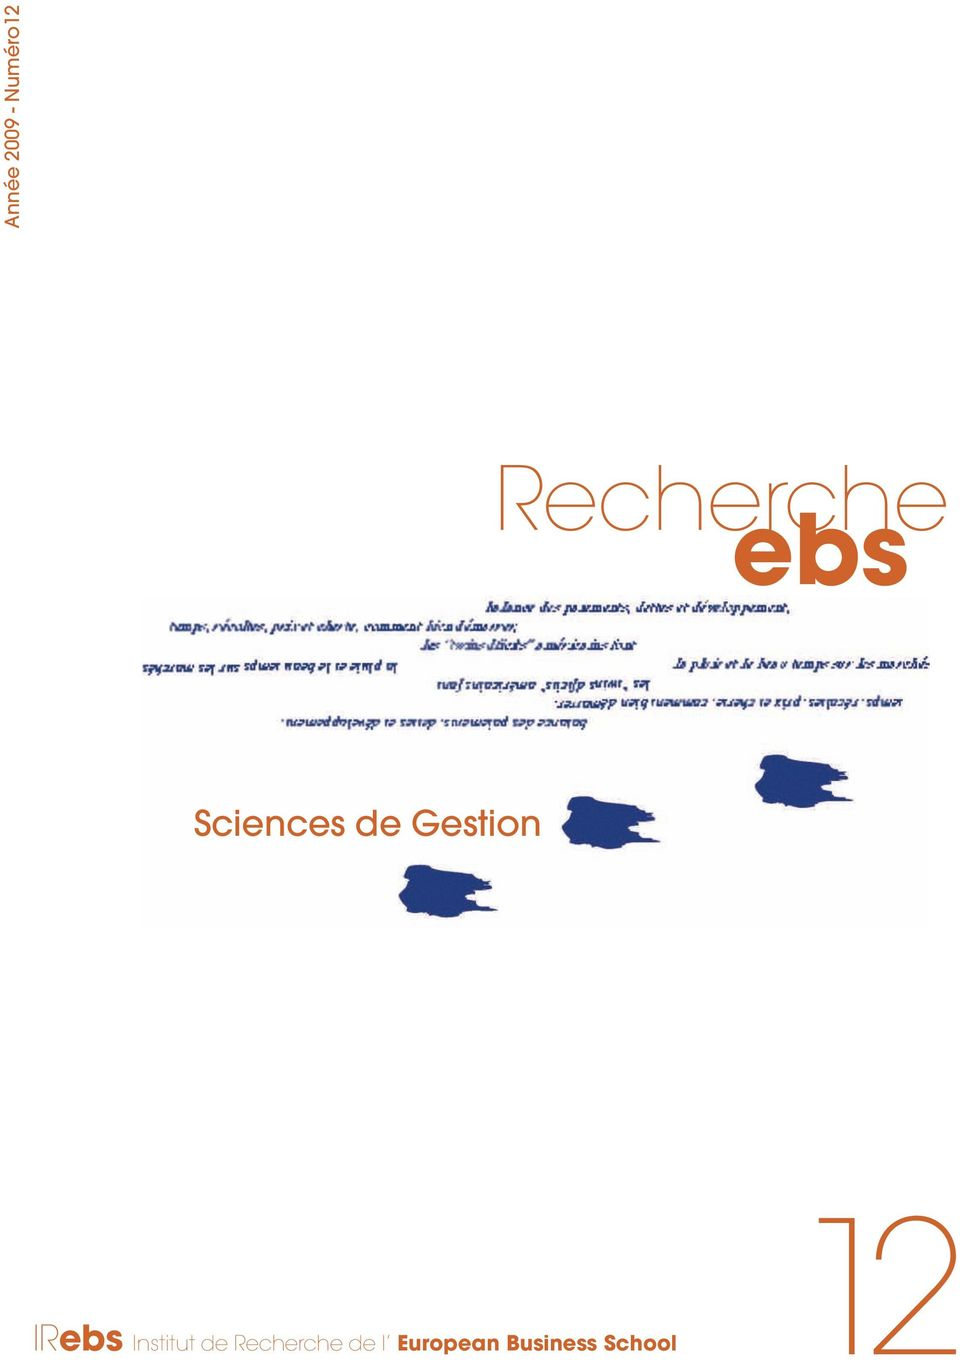 Gestion IRebs Institut de